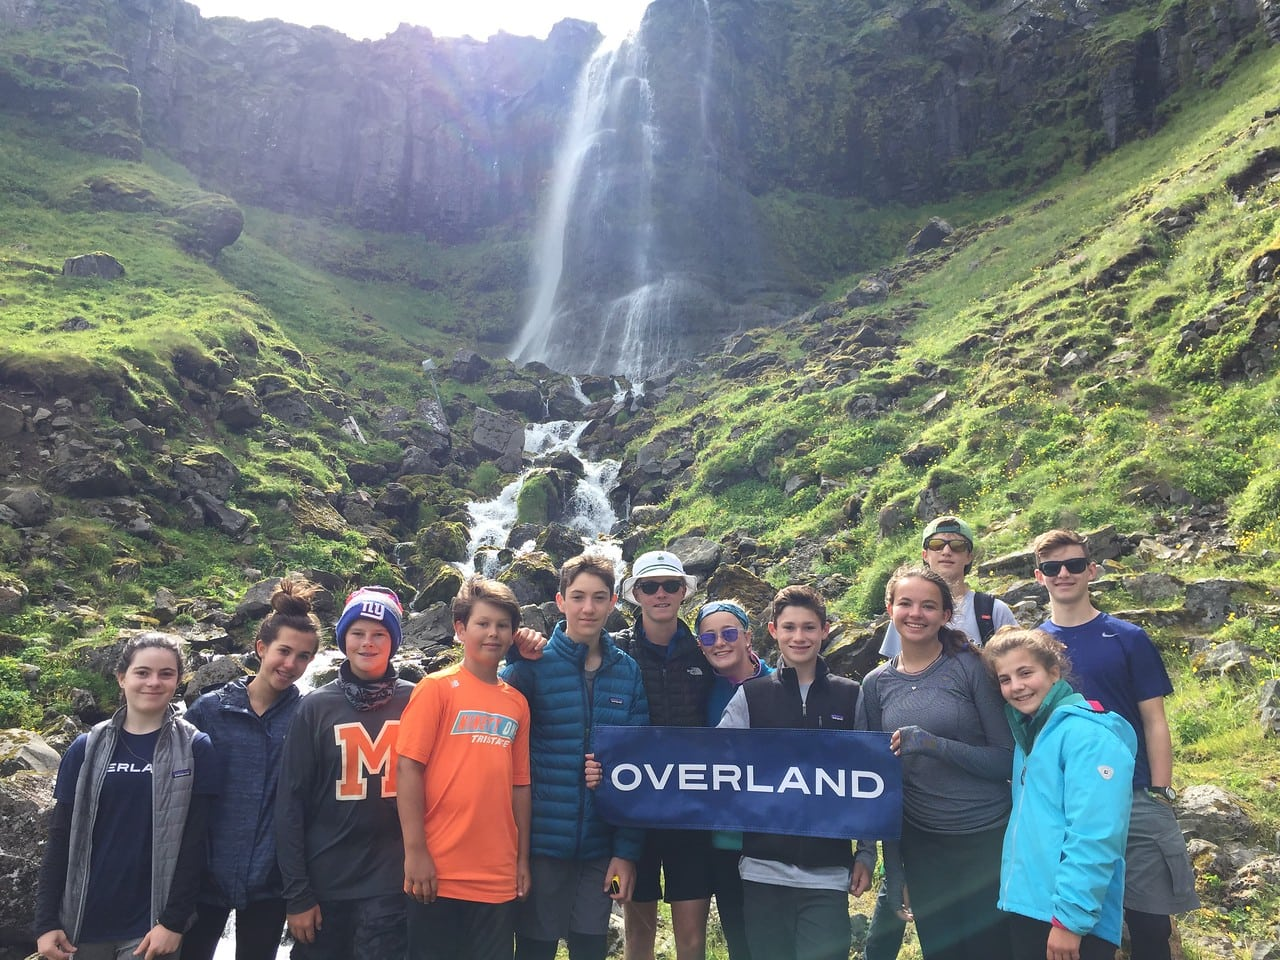 Campers smiling together during their adventure this summer on an Overland teen adventure program